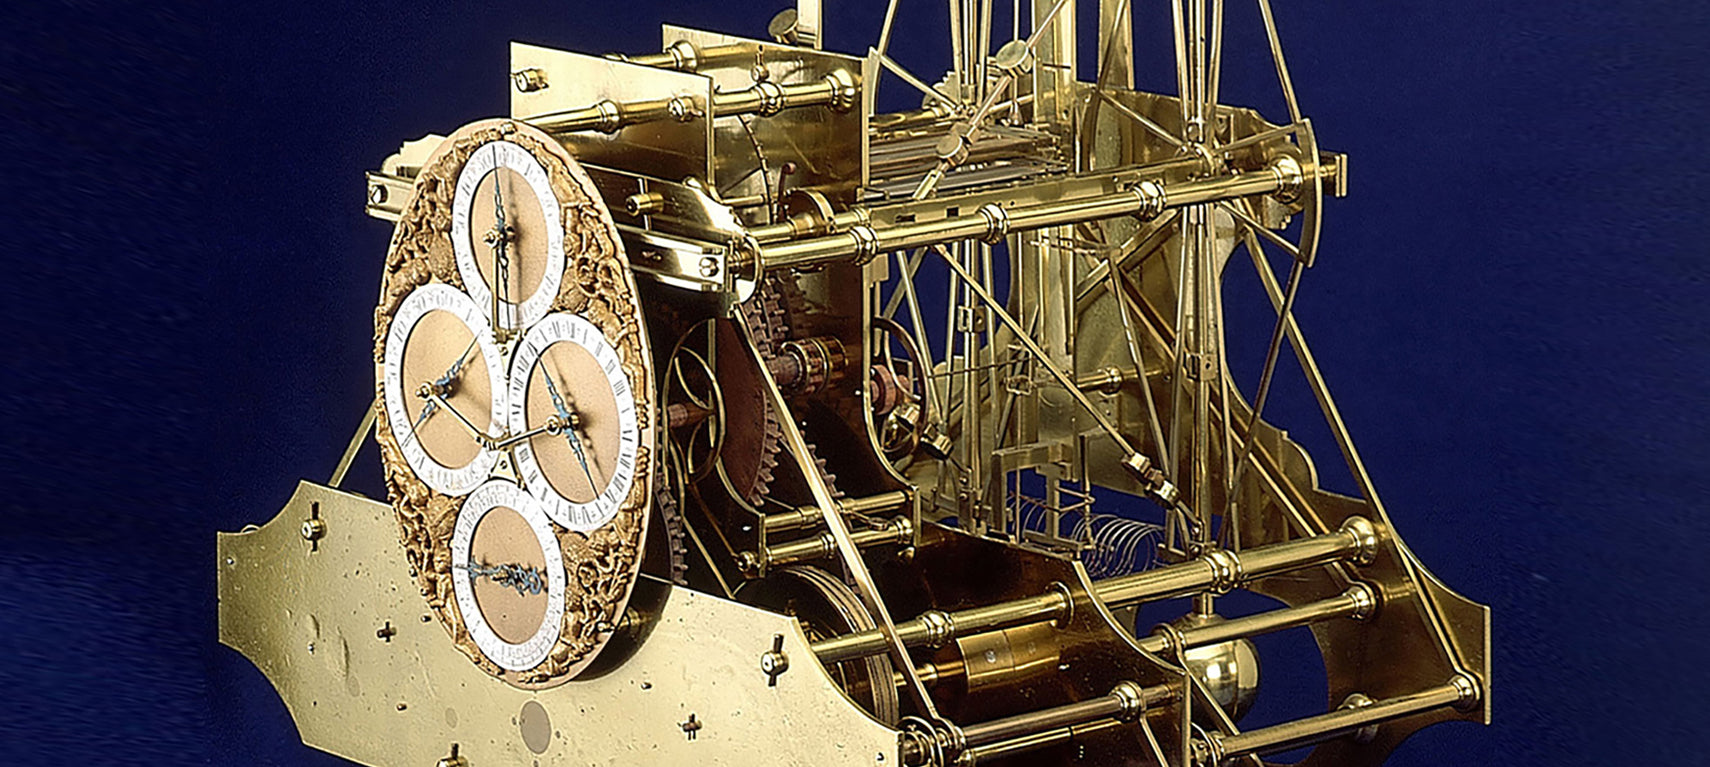 Tribus-Watches-History-Blog-2